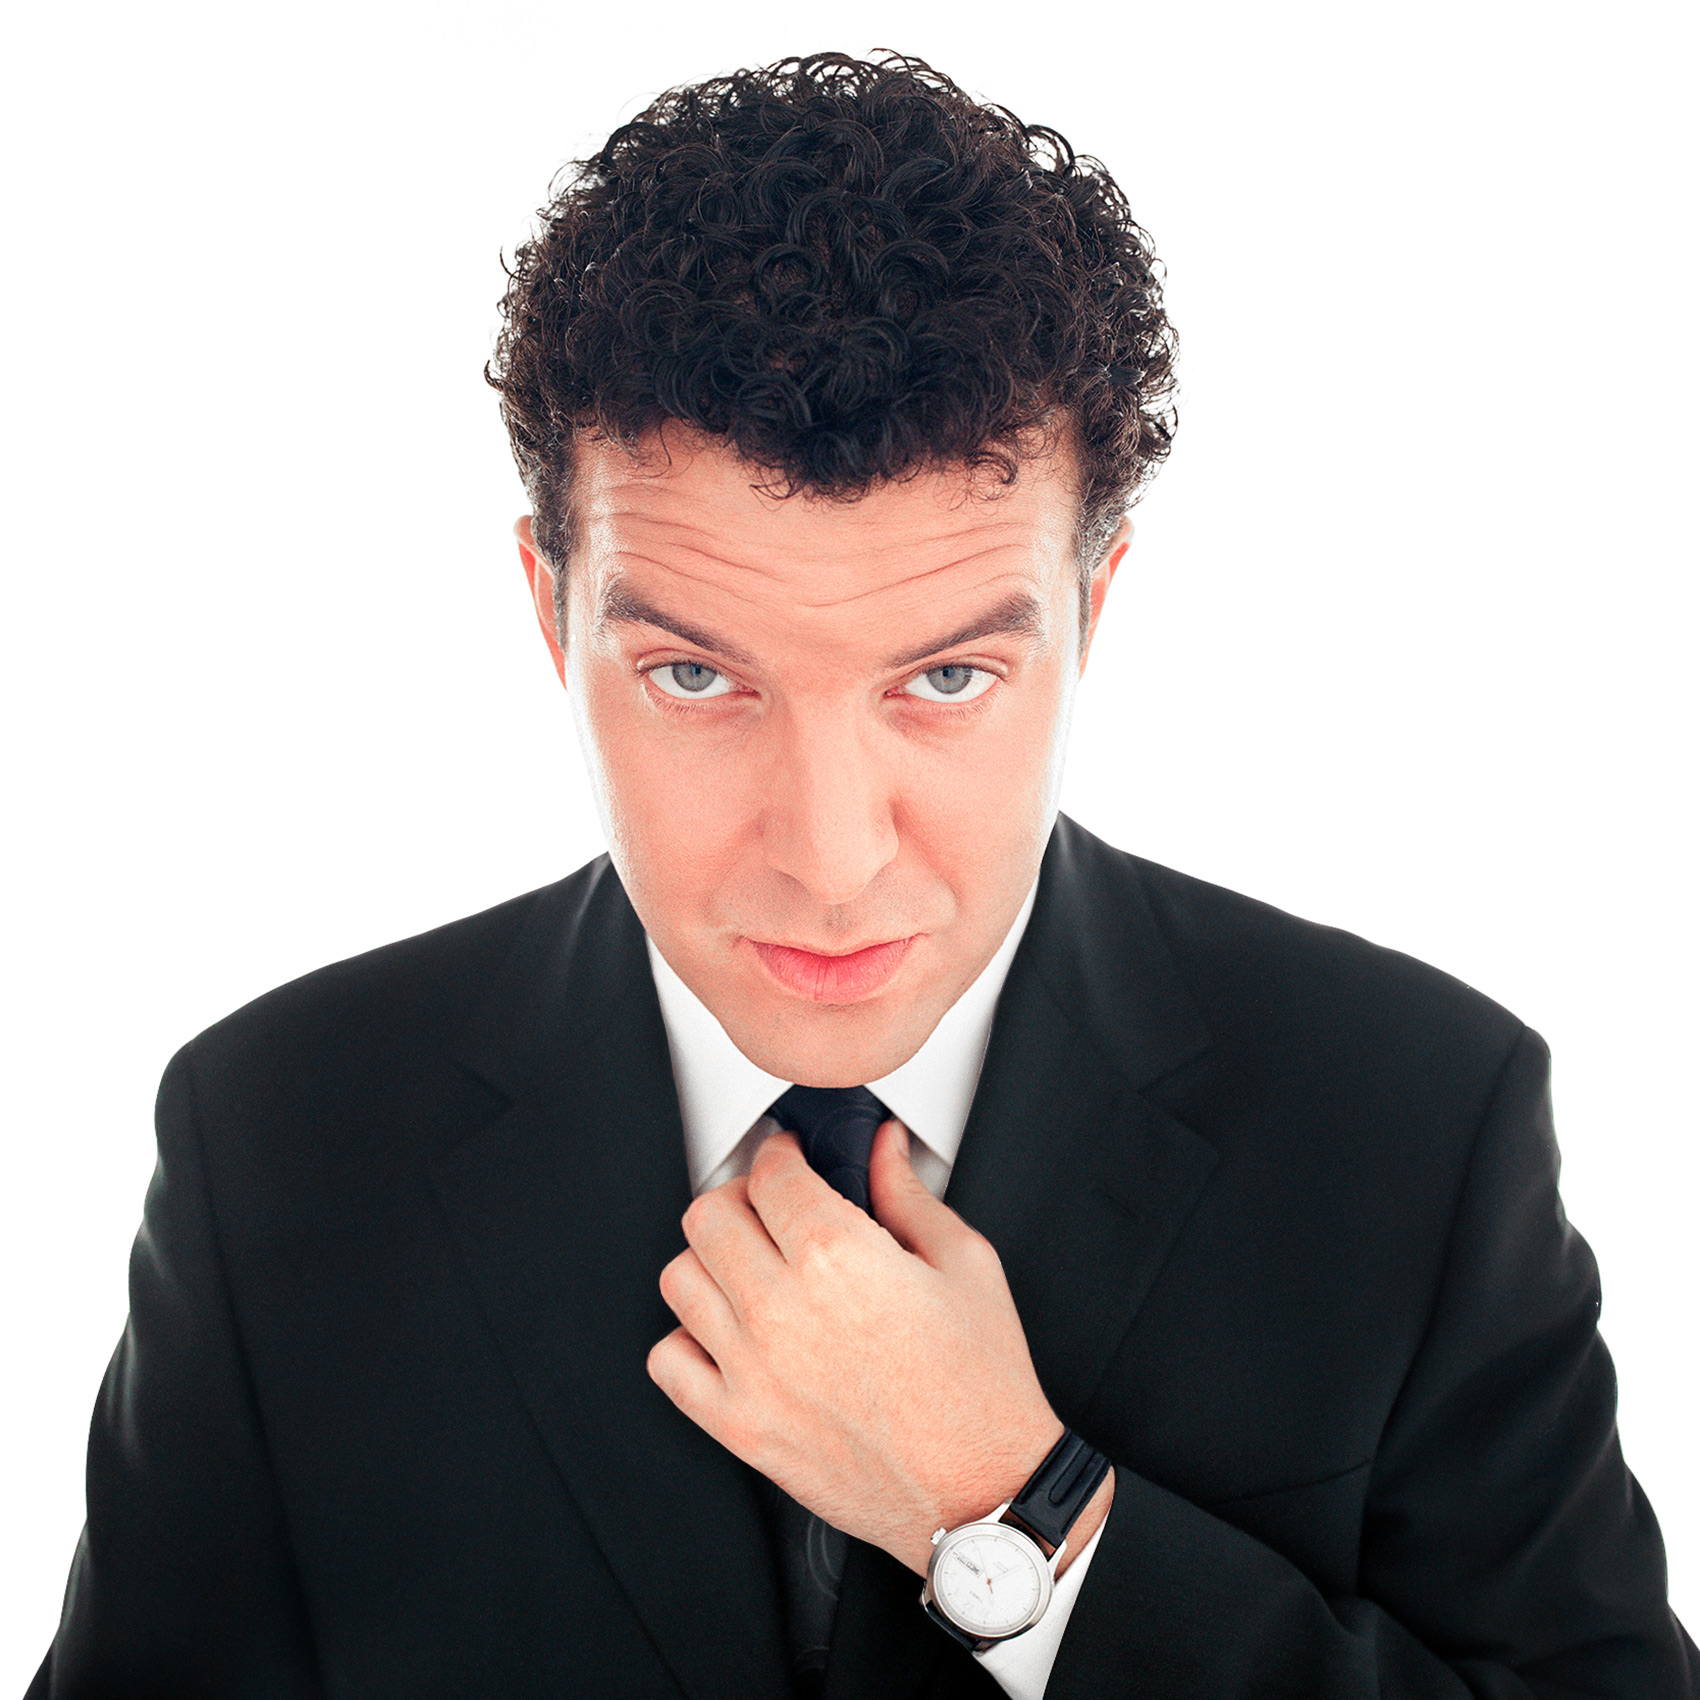 canadian-comedian-rick-mercer-poses-for-a-toronto-portrait